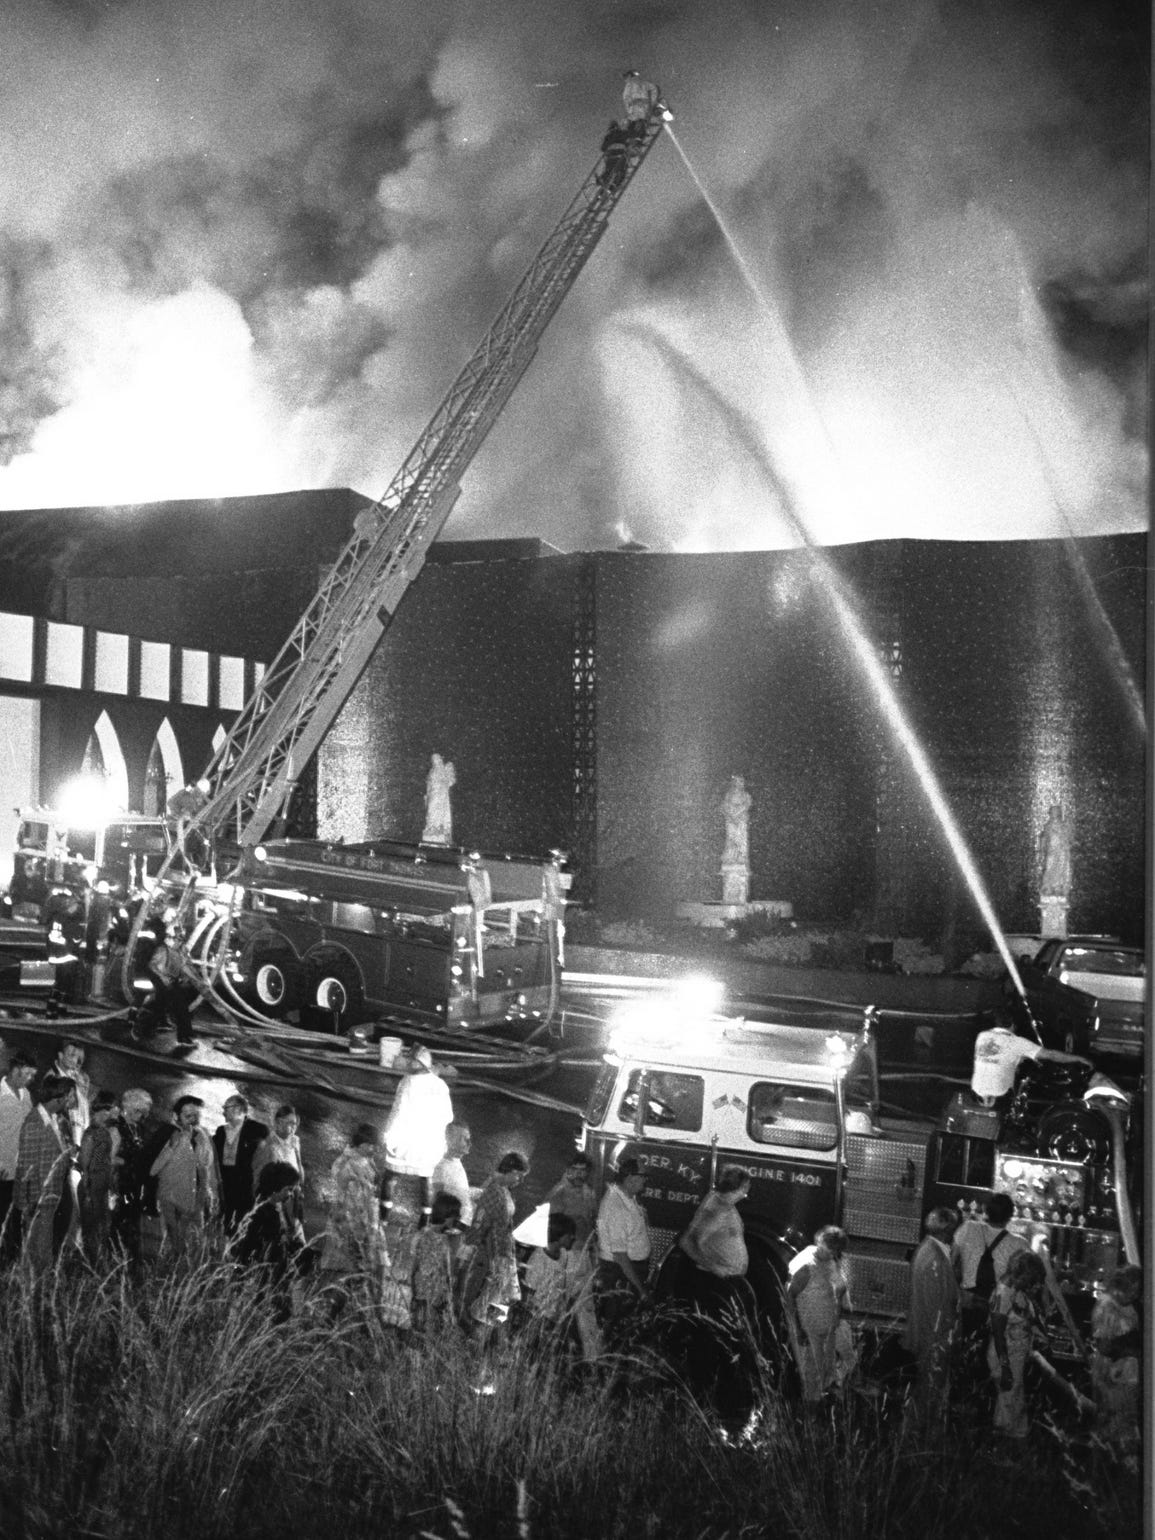 Crews battle the deadly blaze at the Beverly Hills